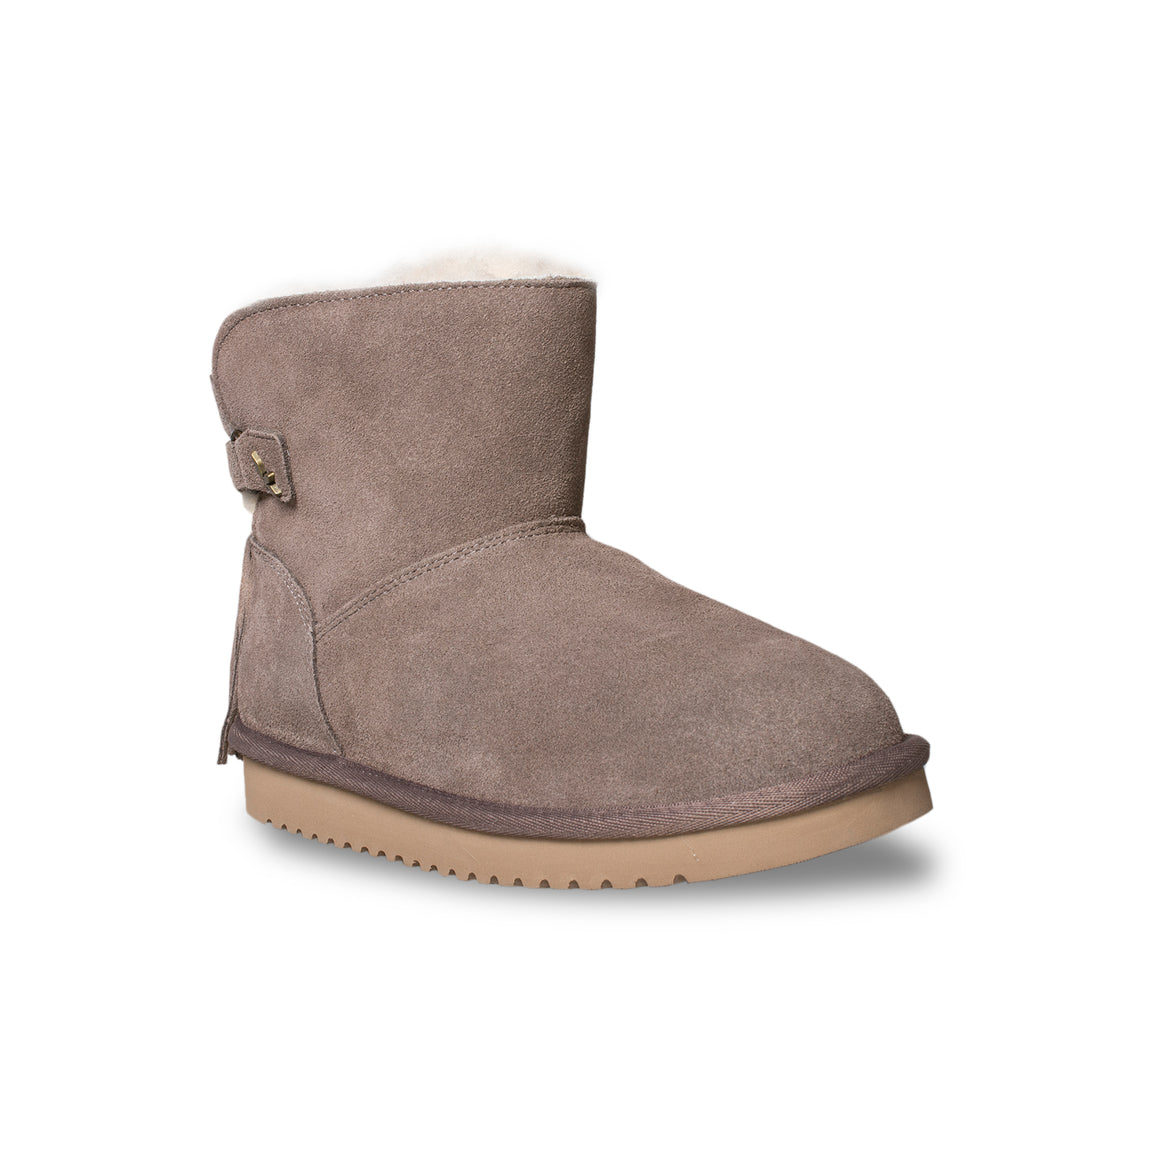 Koolaburra By UGG Jaelyn Mini Cinder Boots - Women's